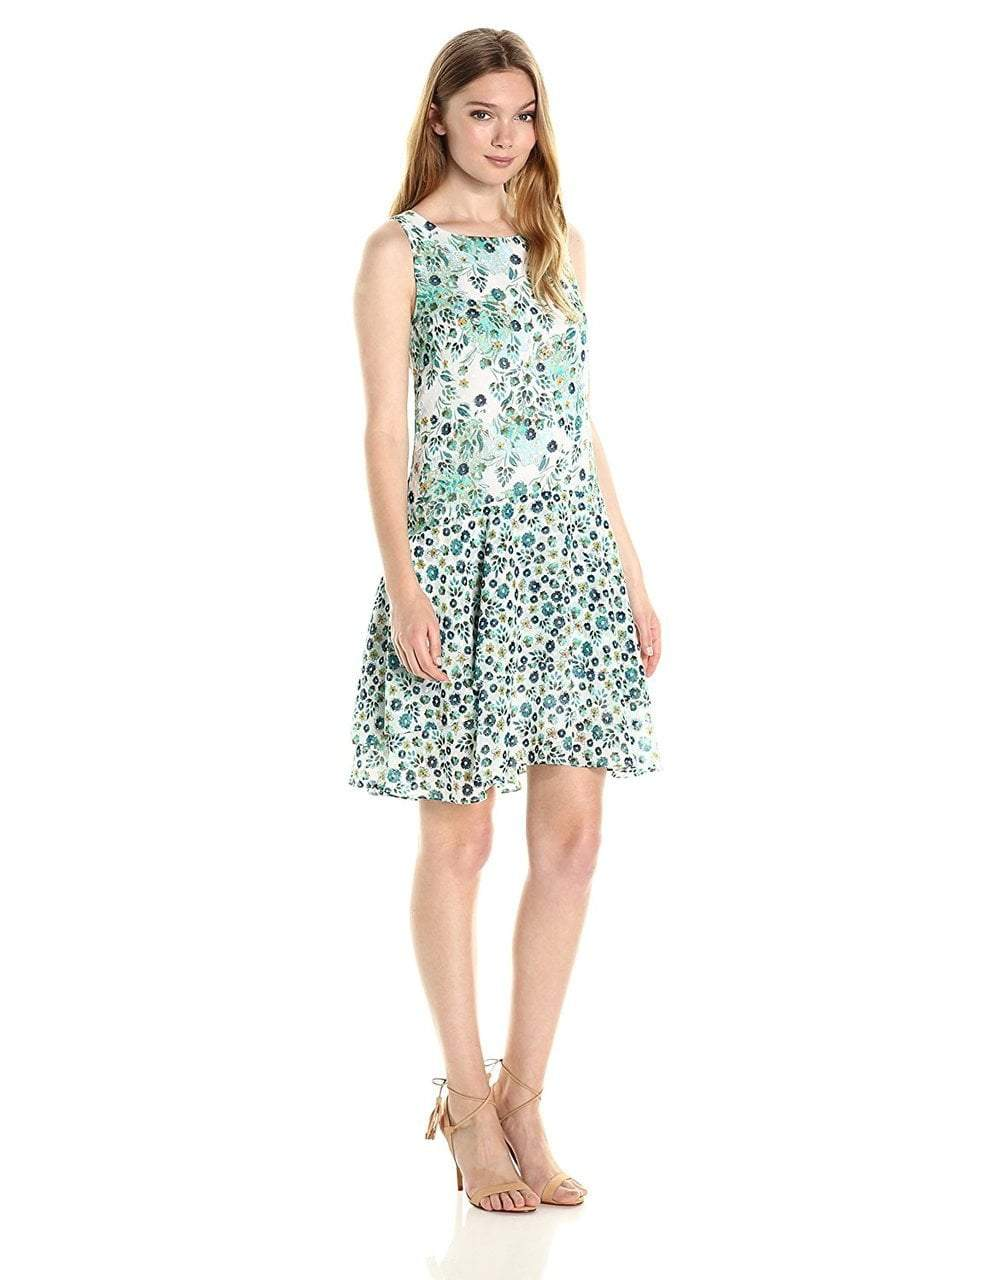 Donna Morgan - D5166M Printed Chiffon A-line Dress in Green and Multi-Color